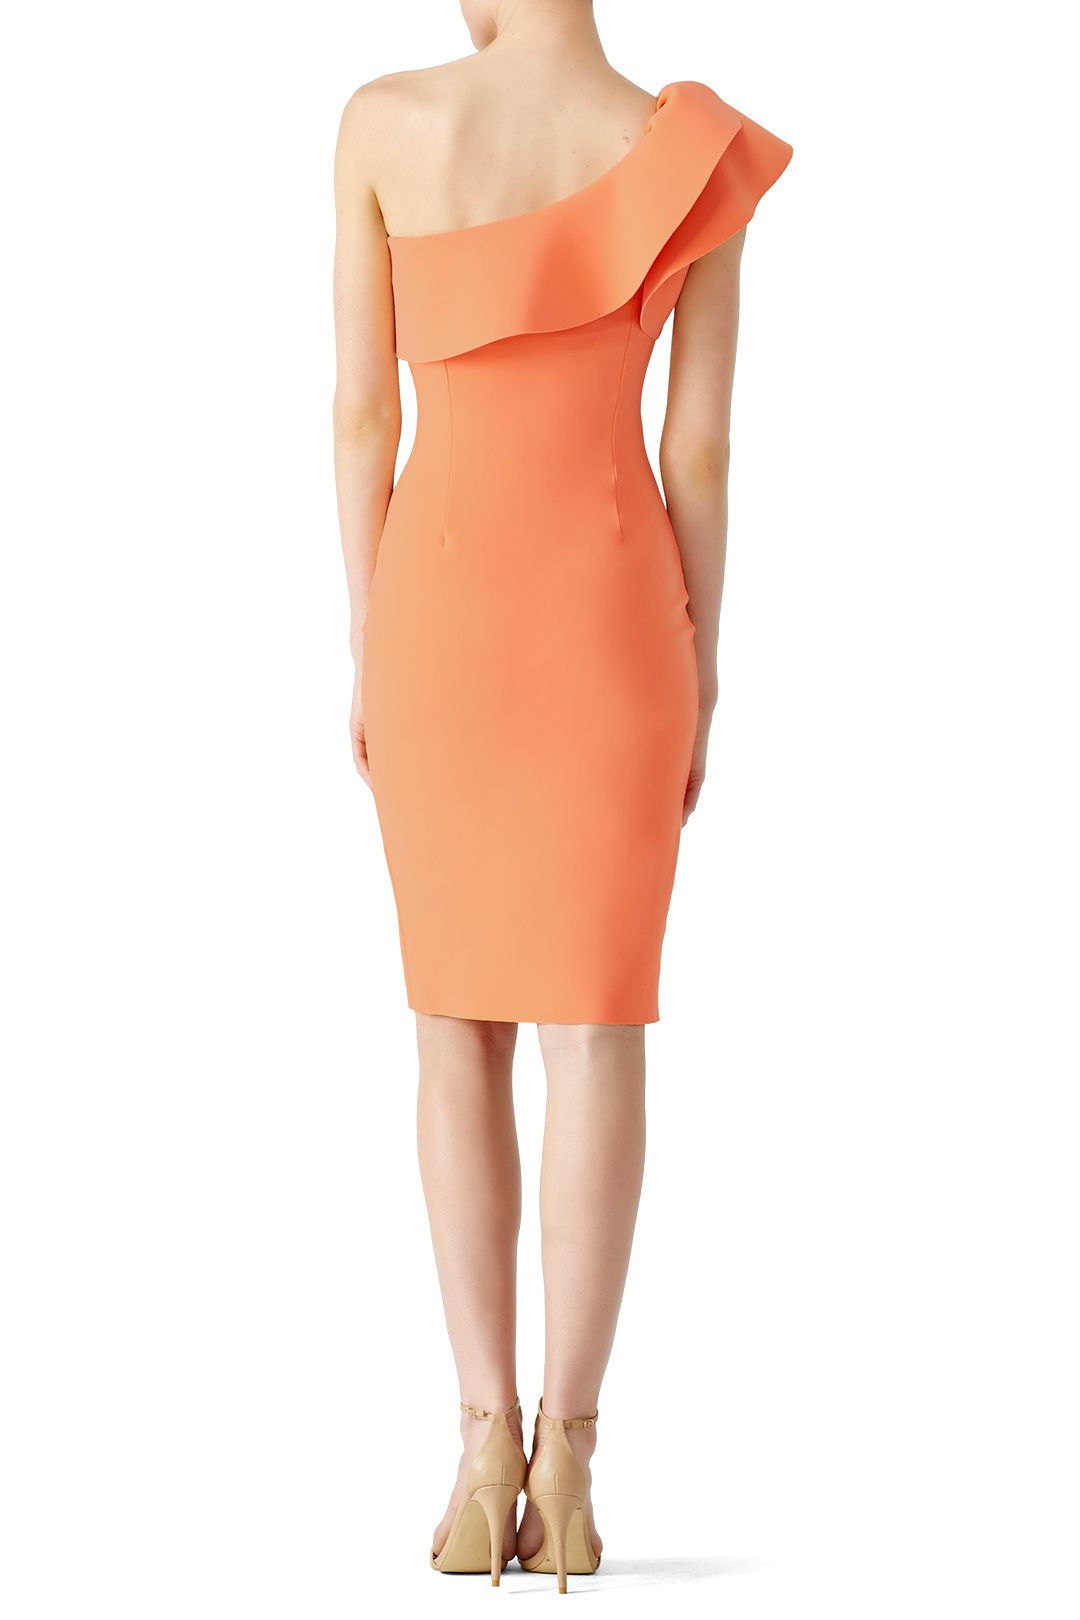 Orange Elisse Dress by La Petite Robe di Chiara Boni for $120 | Rent the Runway